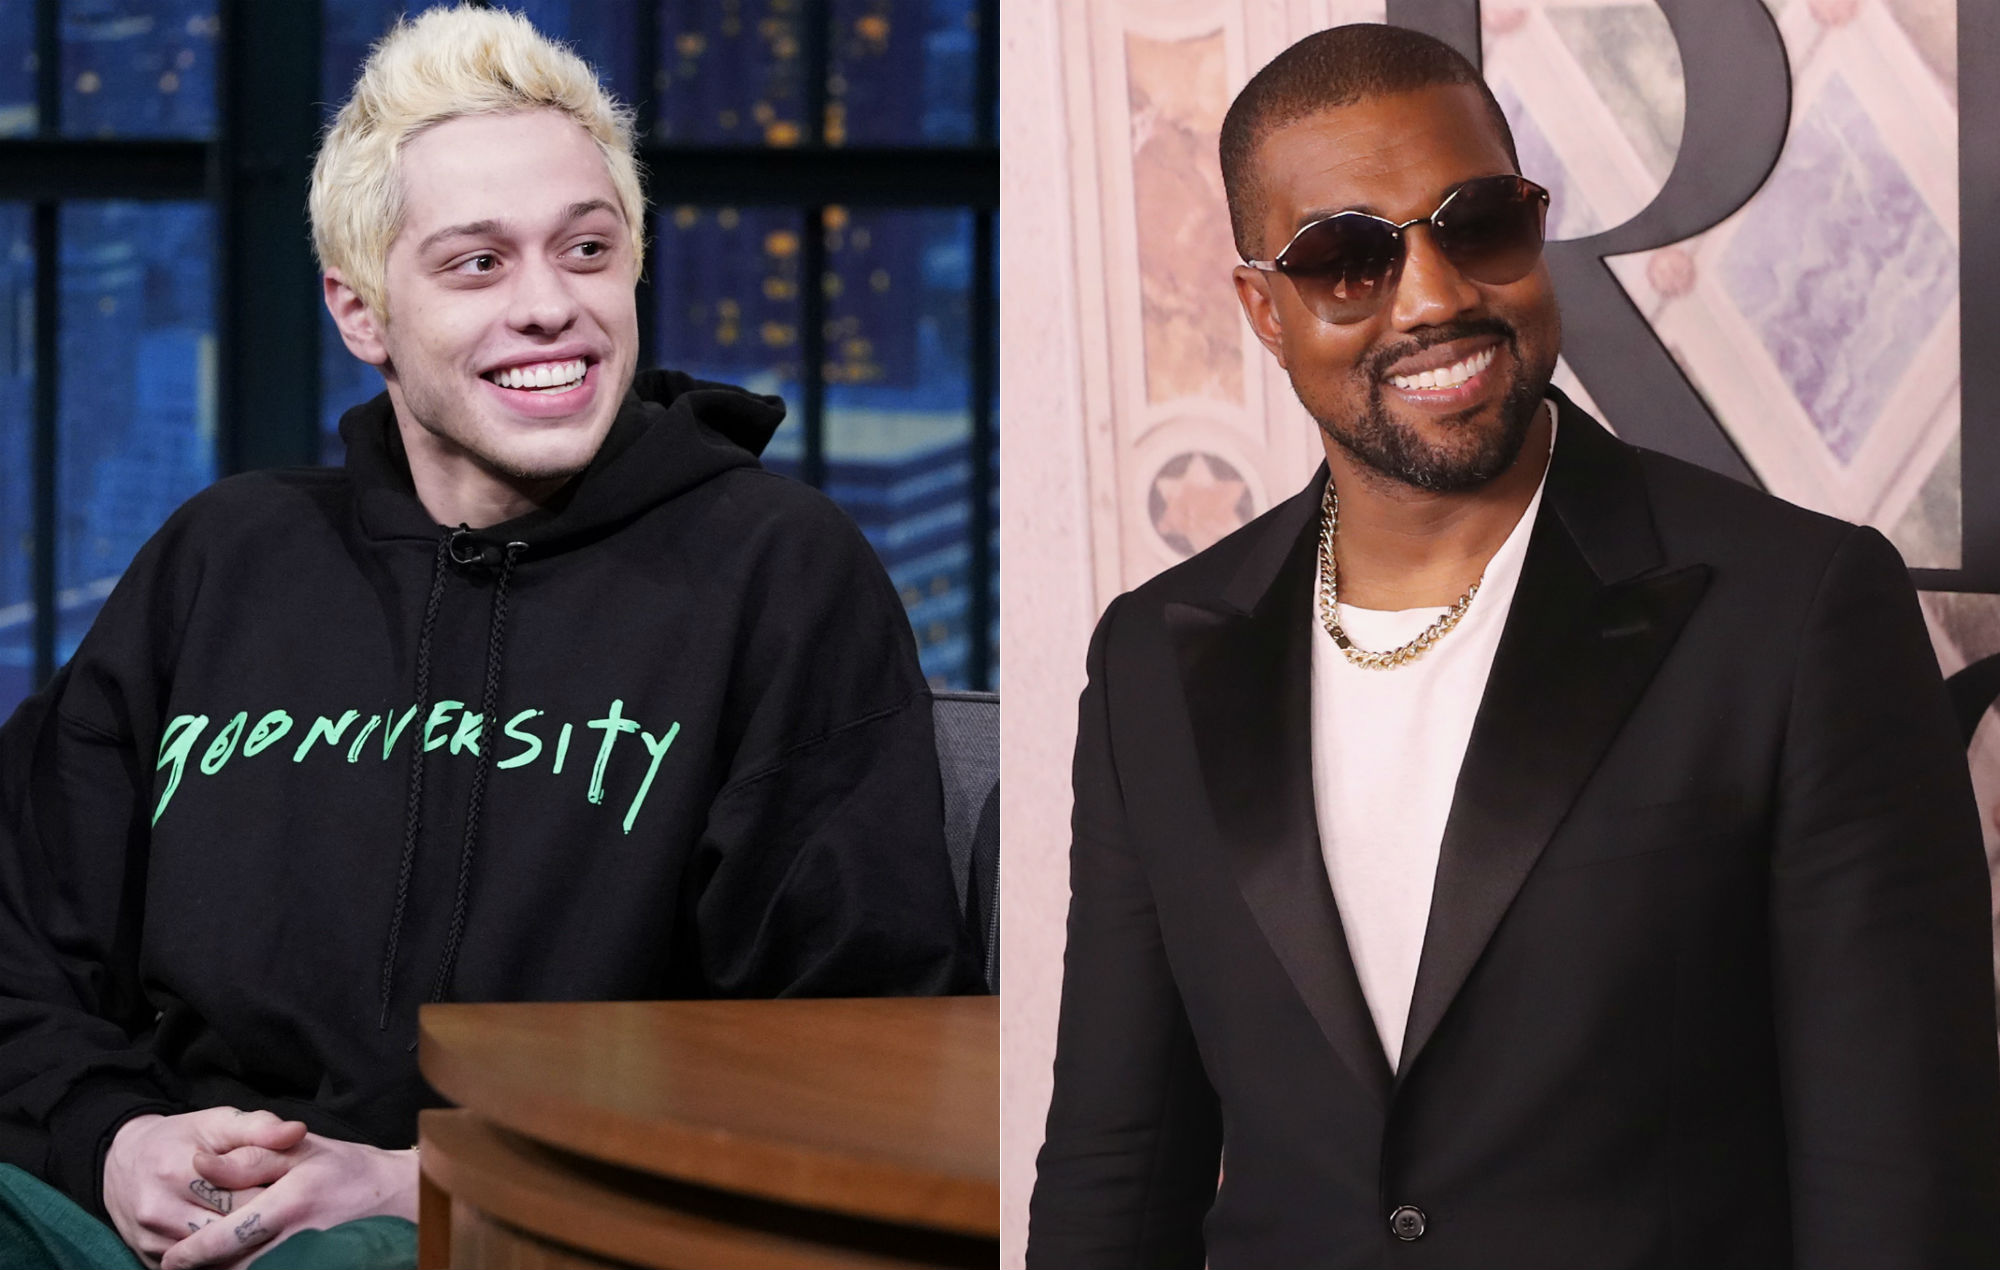 NME Festival blog: Pete Davidson hits out Kanye West's SNL Trump speech: 'Being mentally ill is not an excuse to act like a jackass'